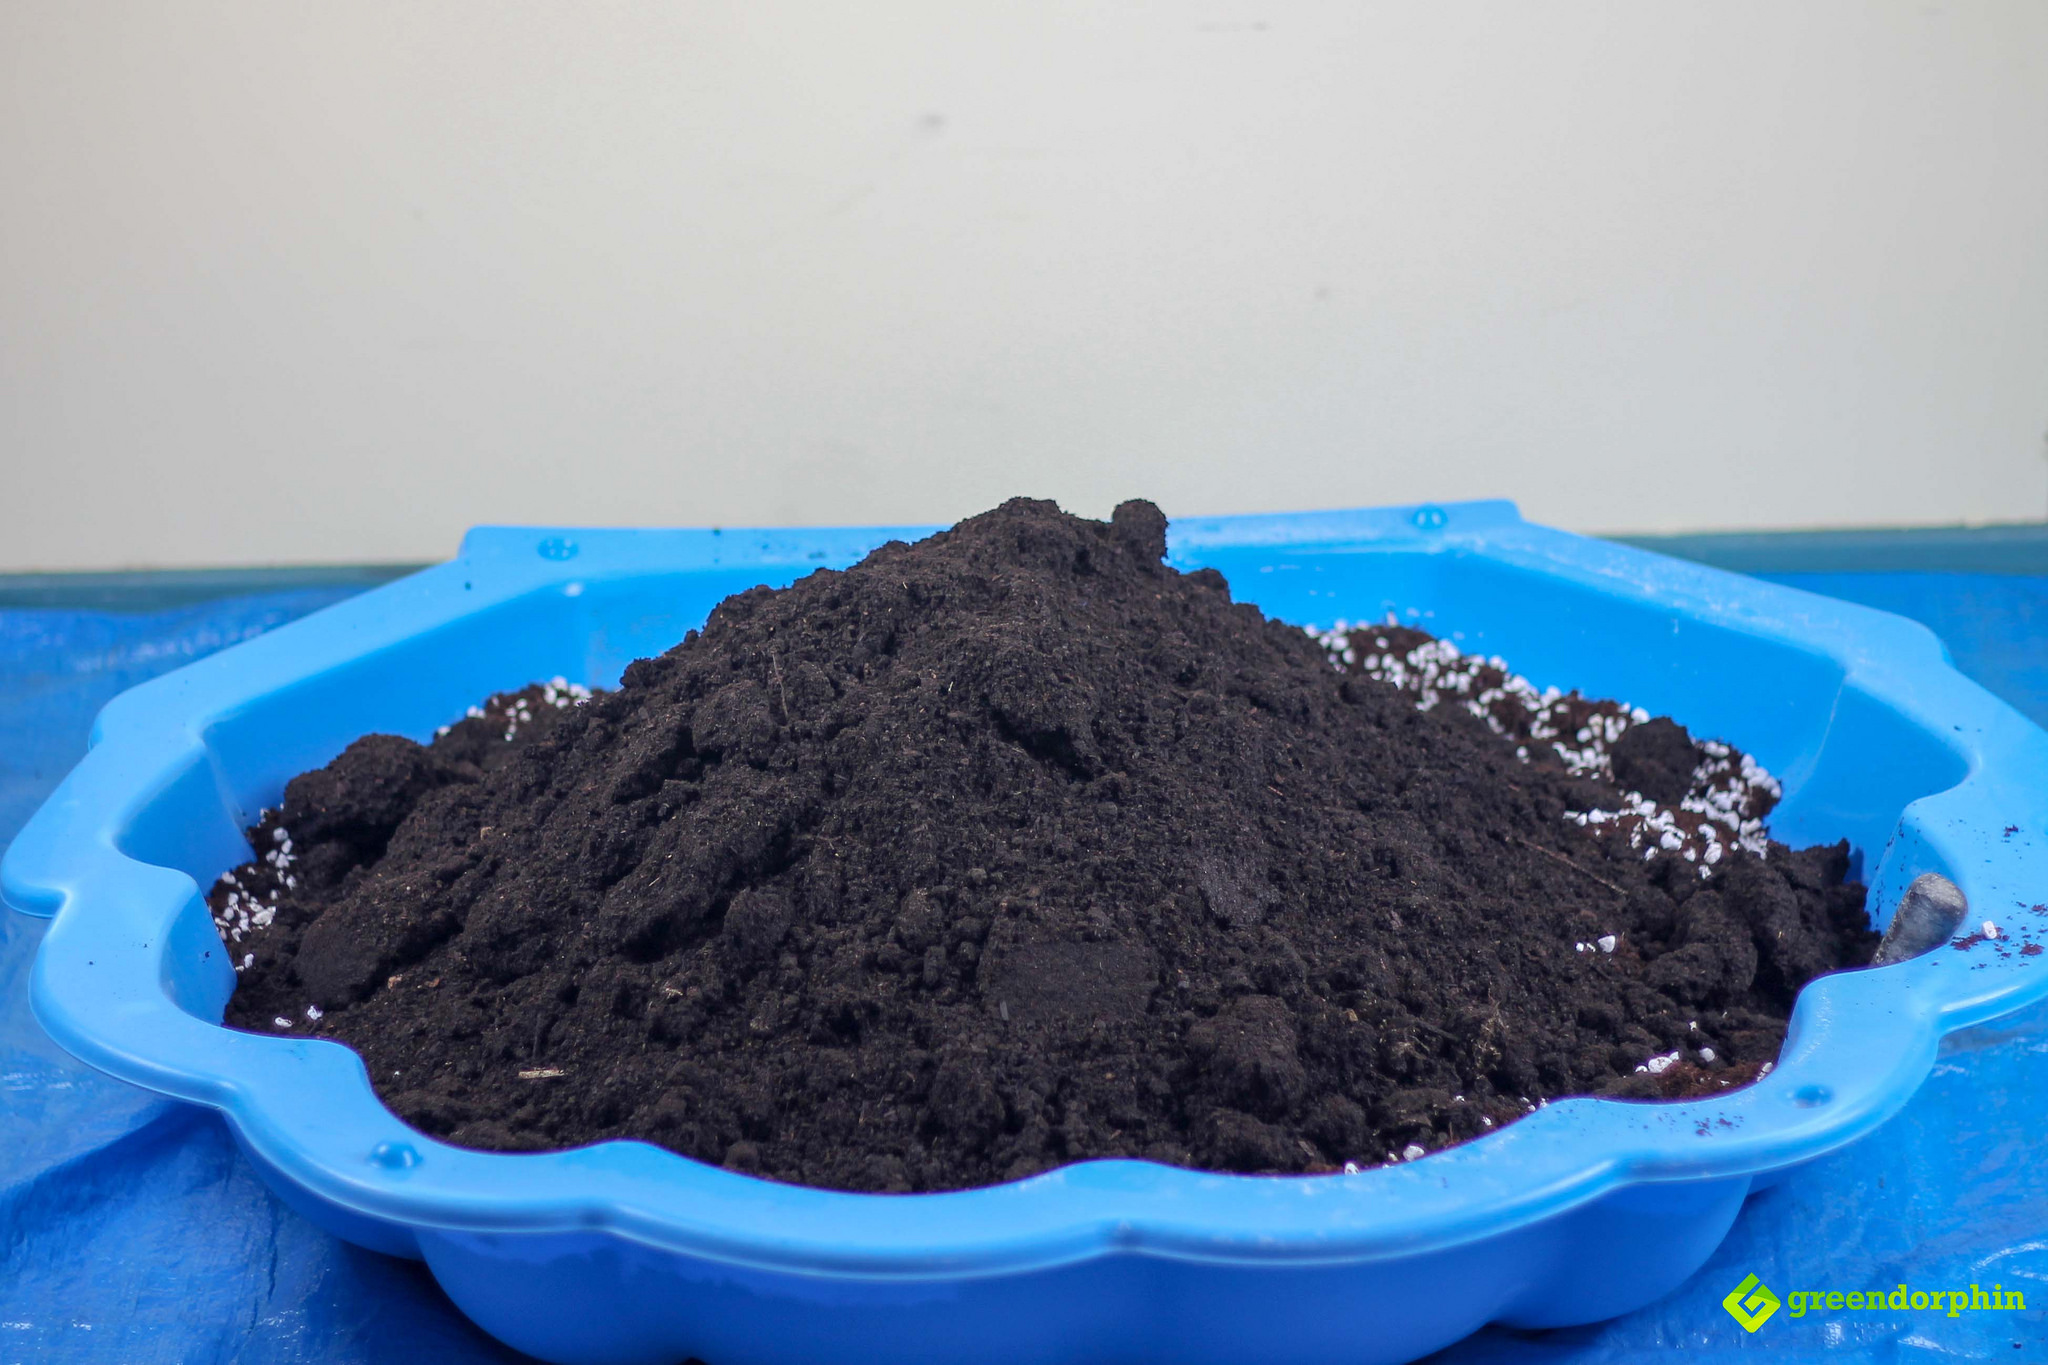 No-Till Soil vermicompost